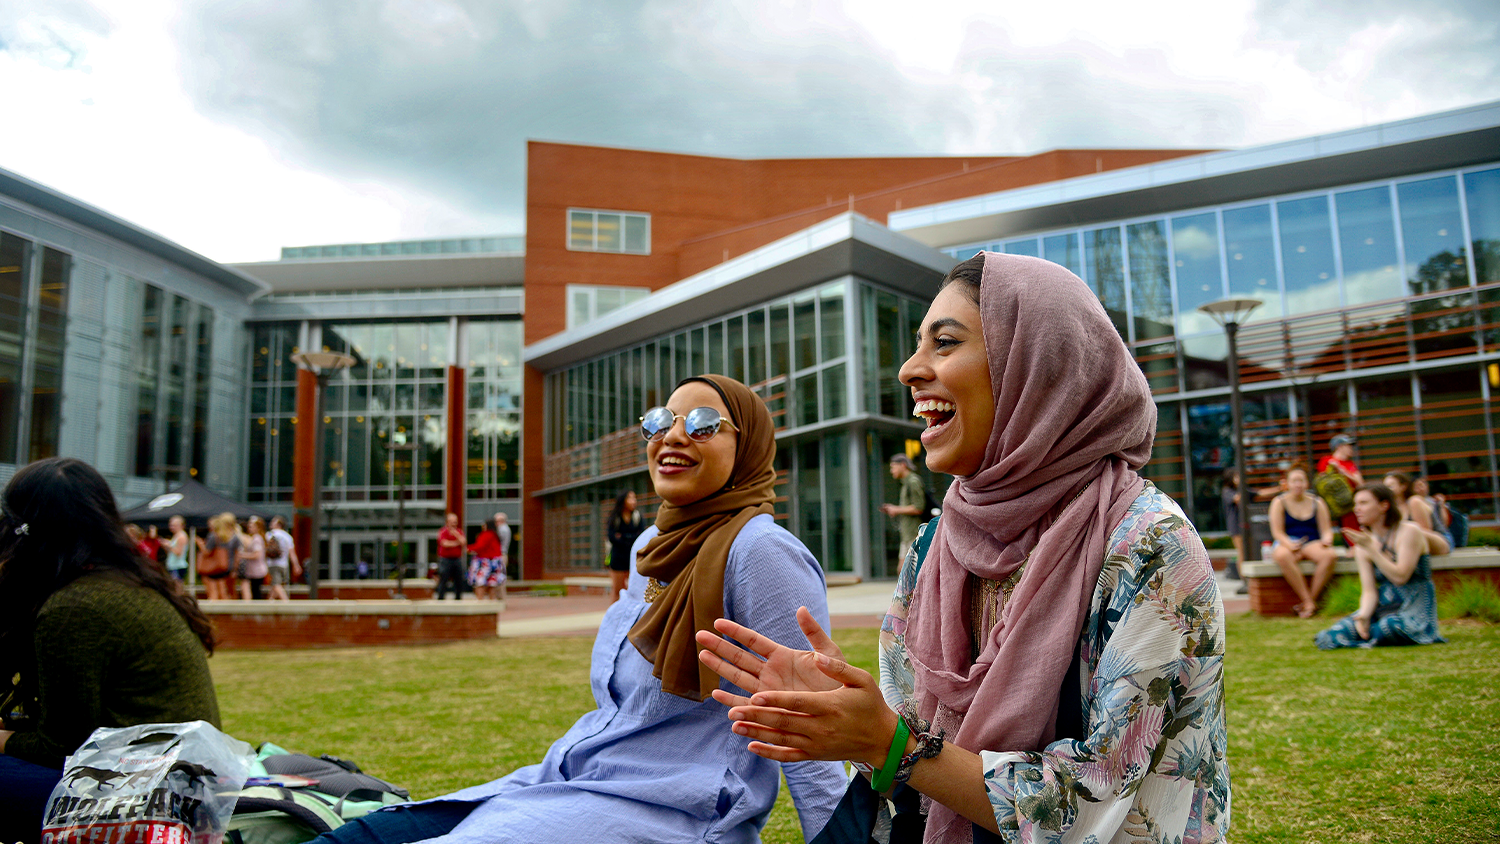 Two female students with head scarfs are sitting on grass smiling at each other. There are other students in the background.